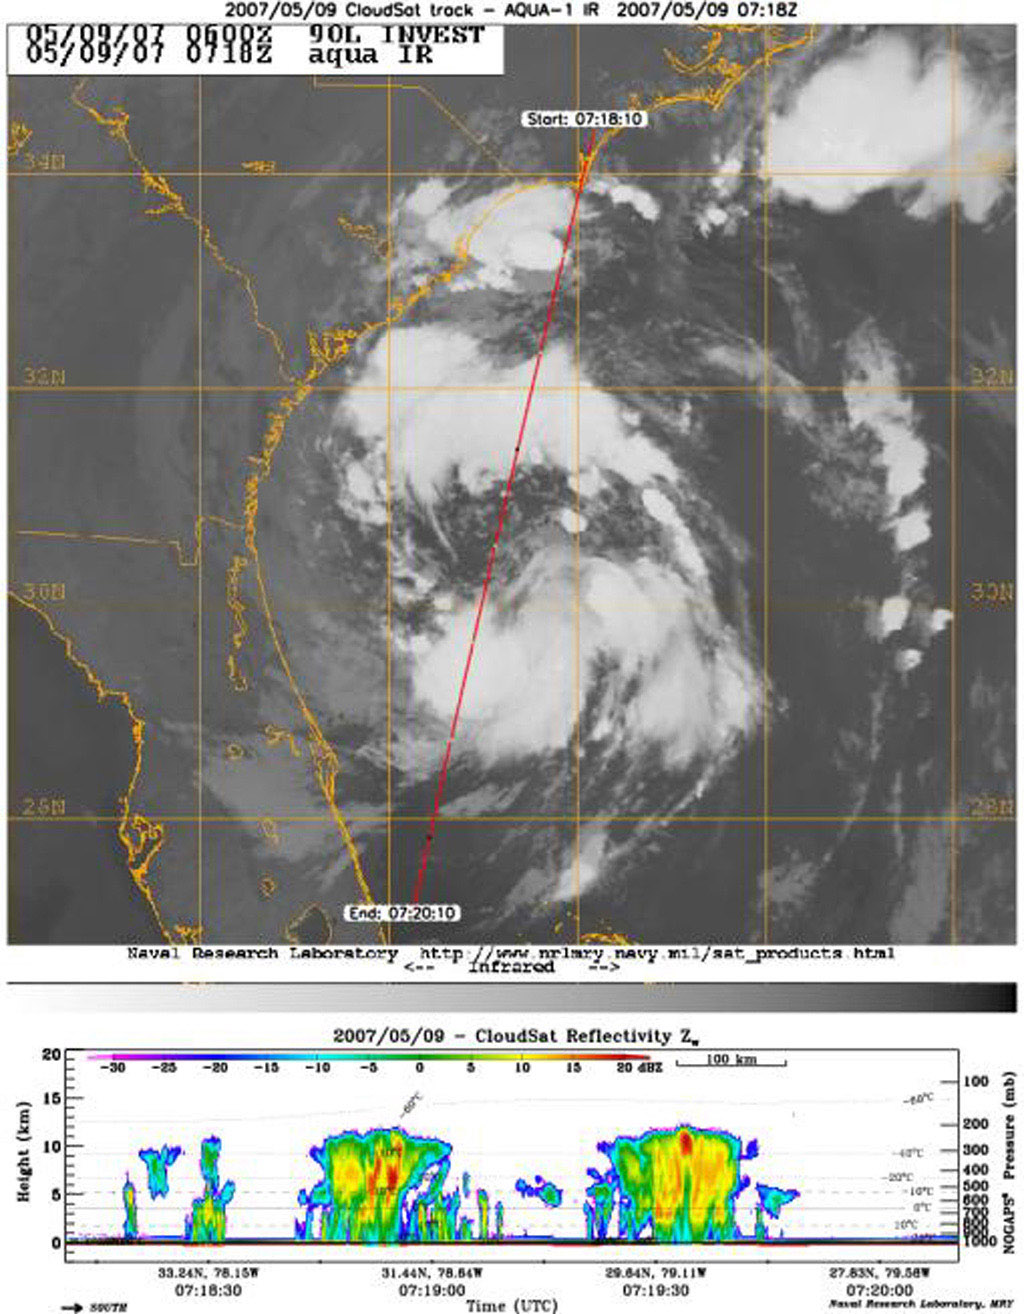 NASA's CloudSat Cloud Profiling Radar captured a profile across Tropical Storm Andrea on Wednesday, May 9, 2007, near the South Carolina/Georgia/Florida Atlantic coast.